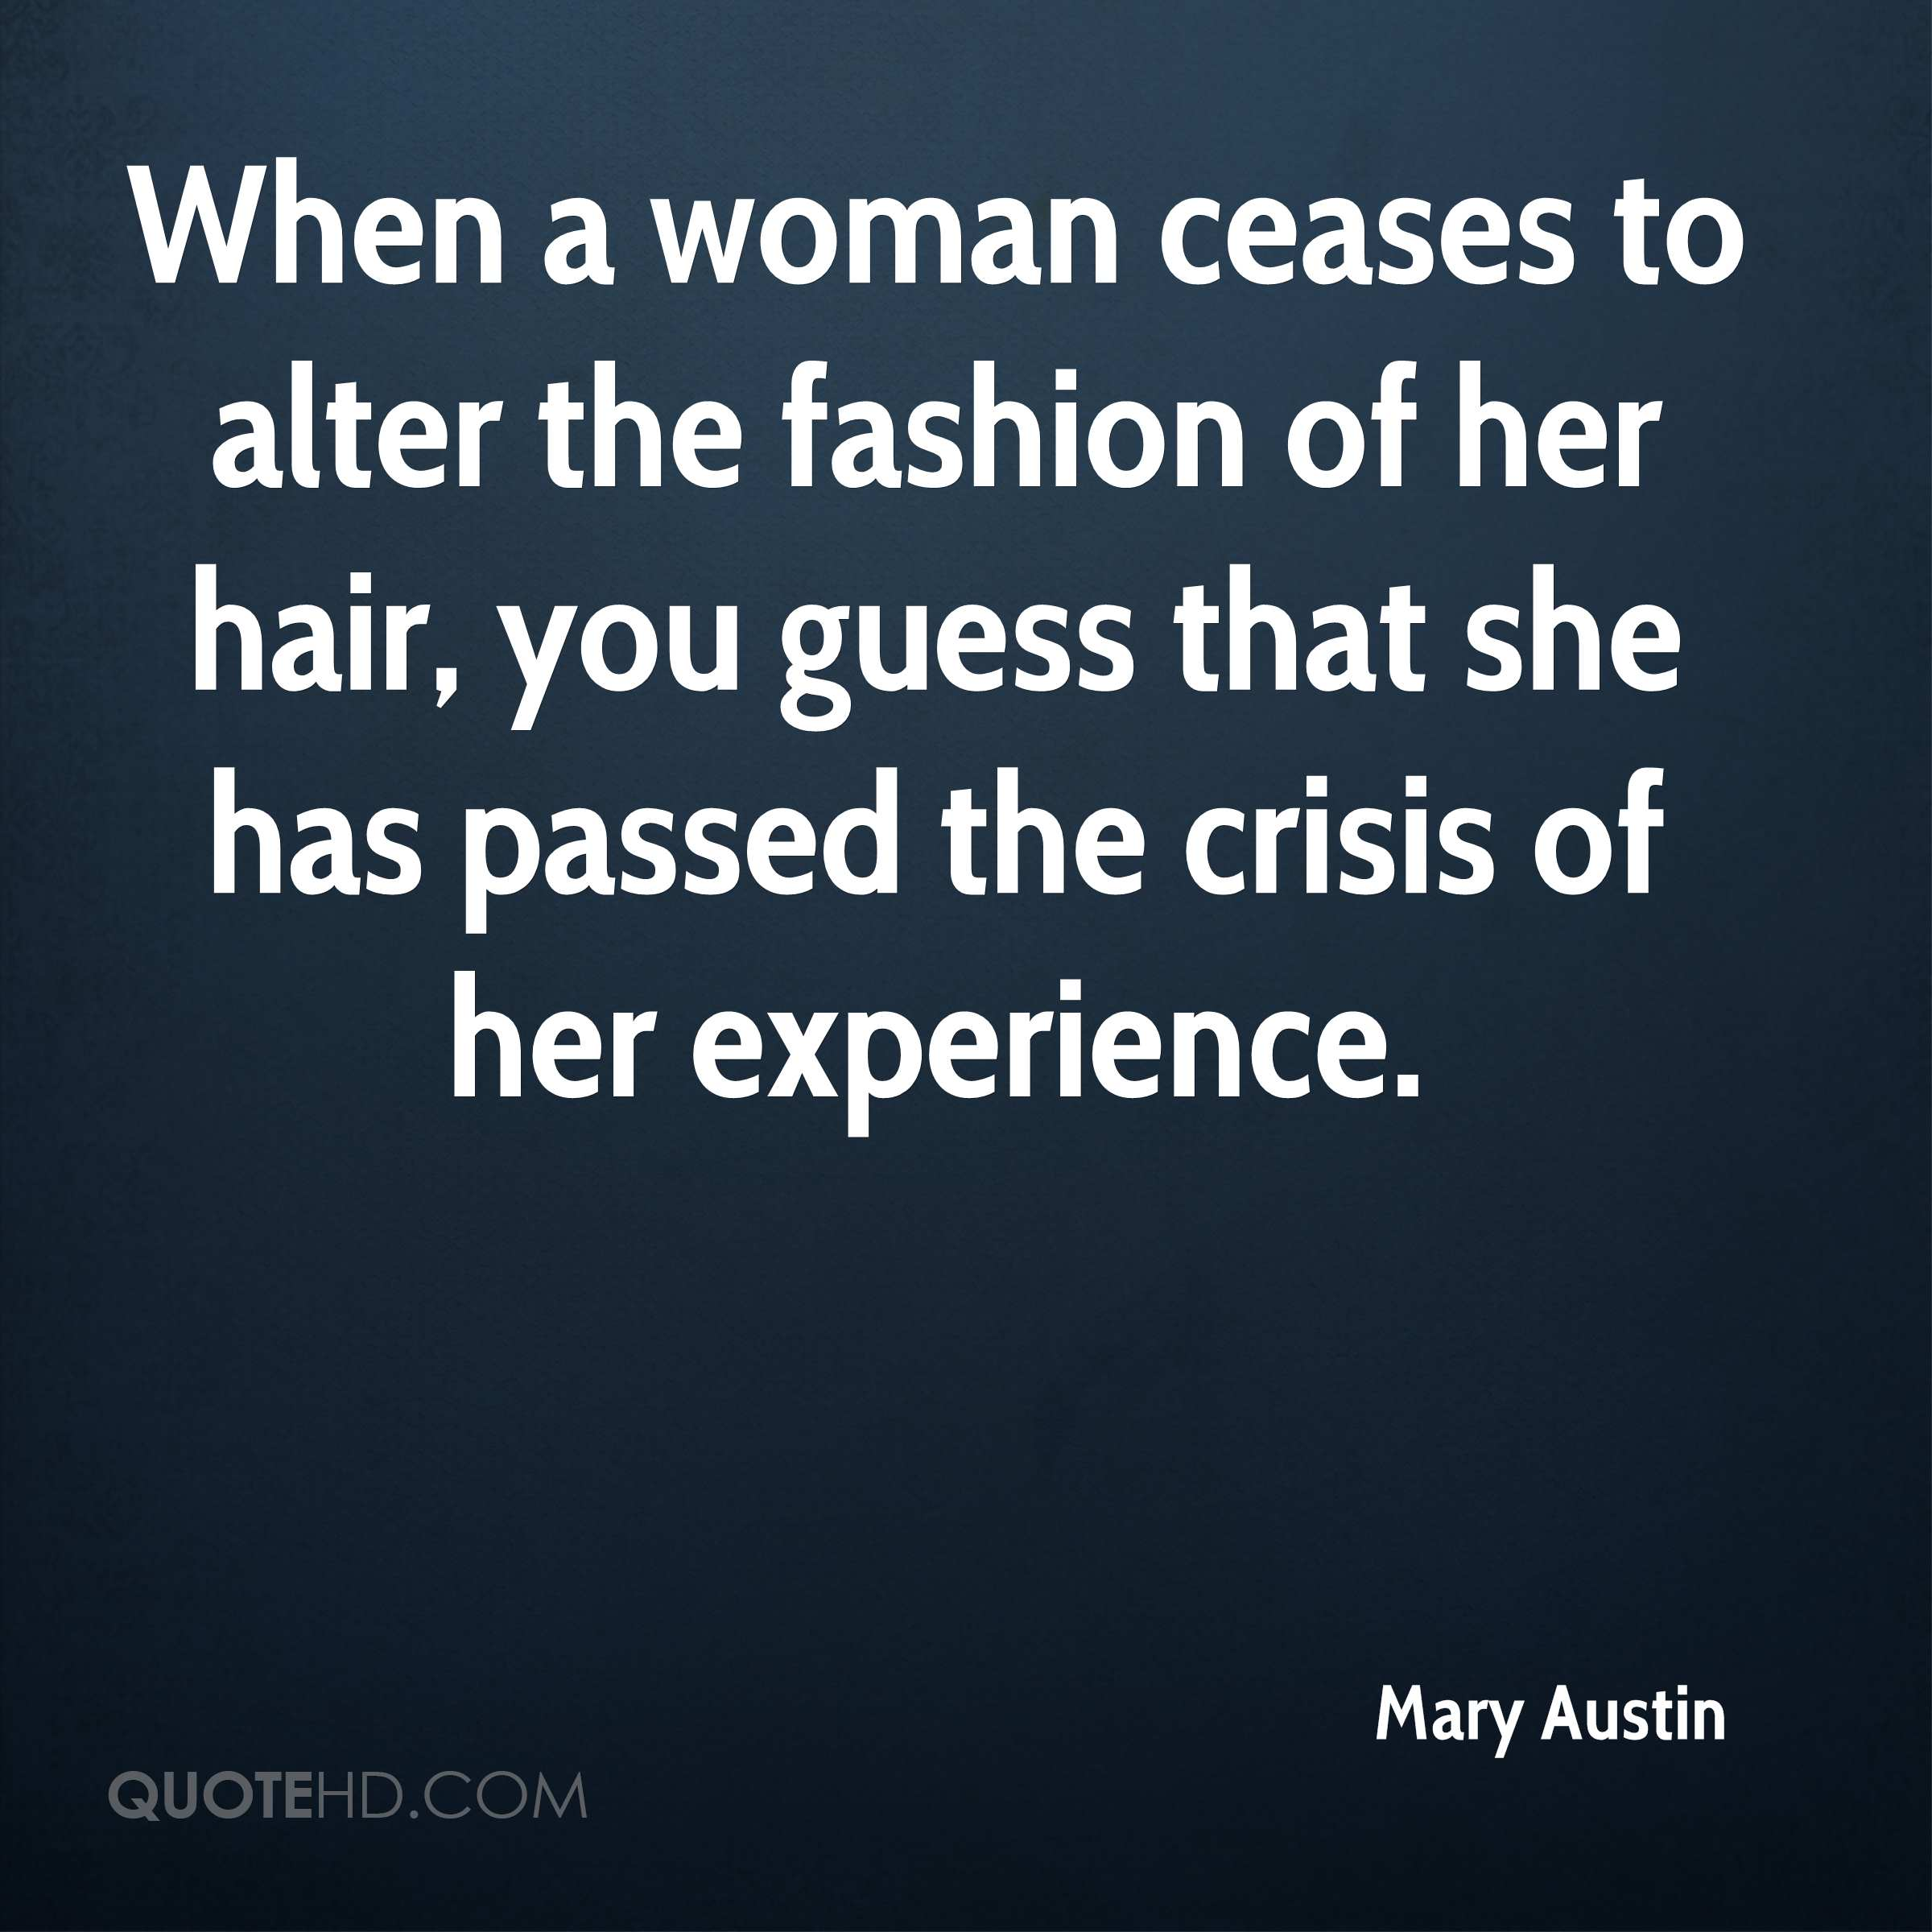 When a woman ceases to alter the fashion of her hair, you guess that she has passed the crisis of her experience.